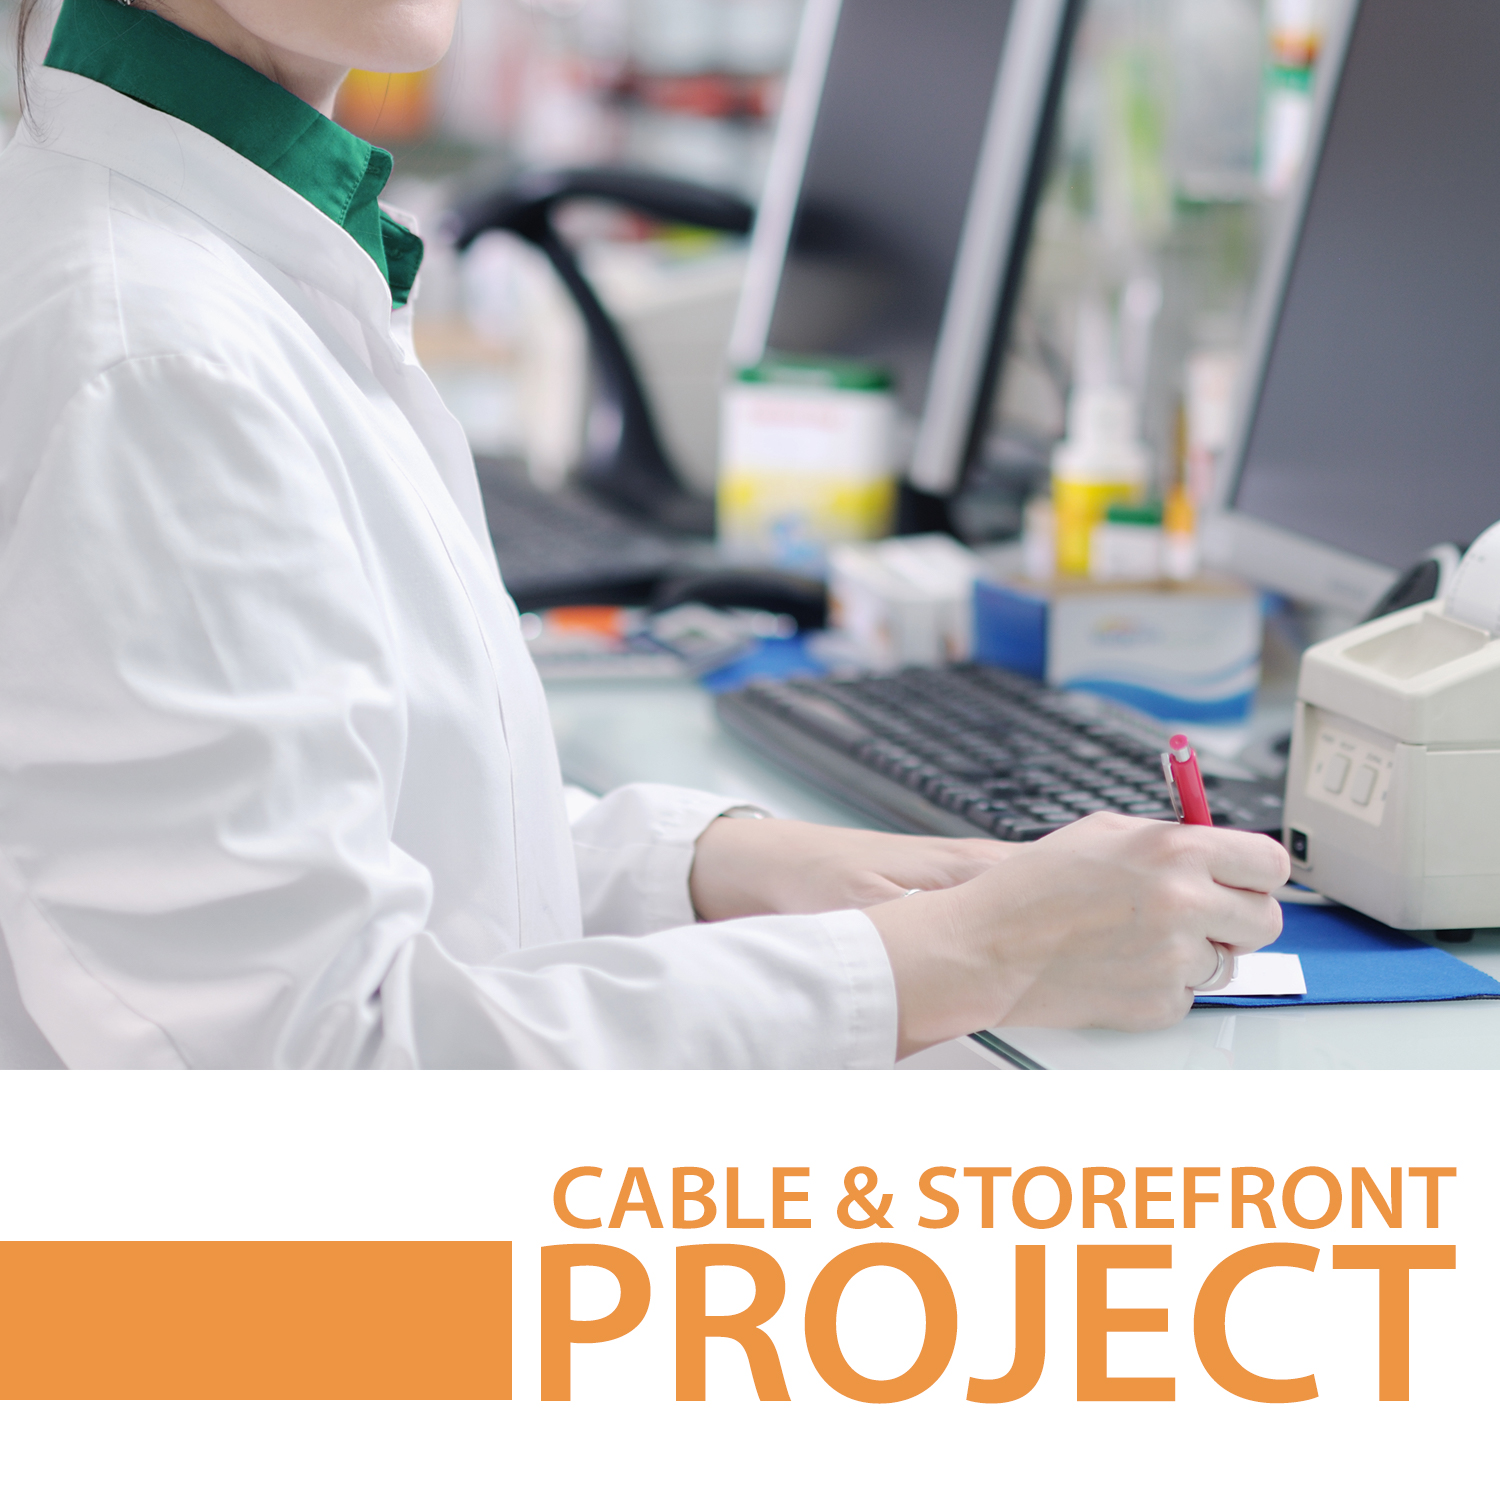 cable and storefront project case study icon